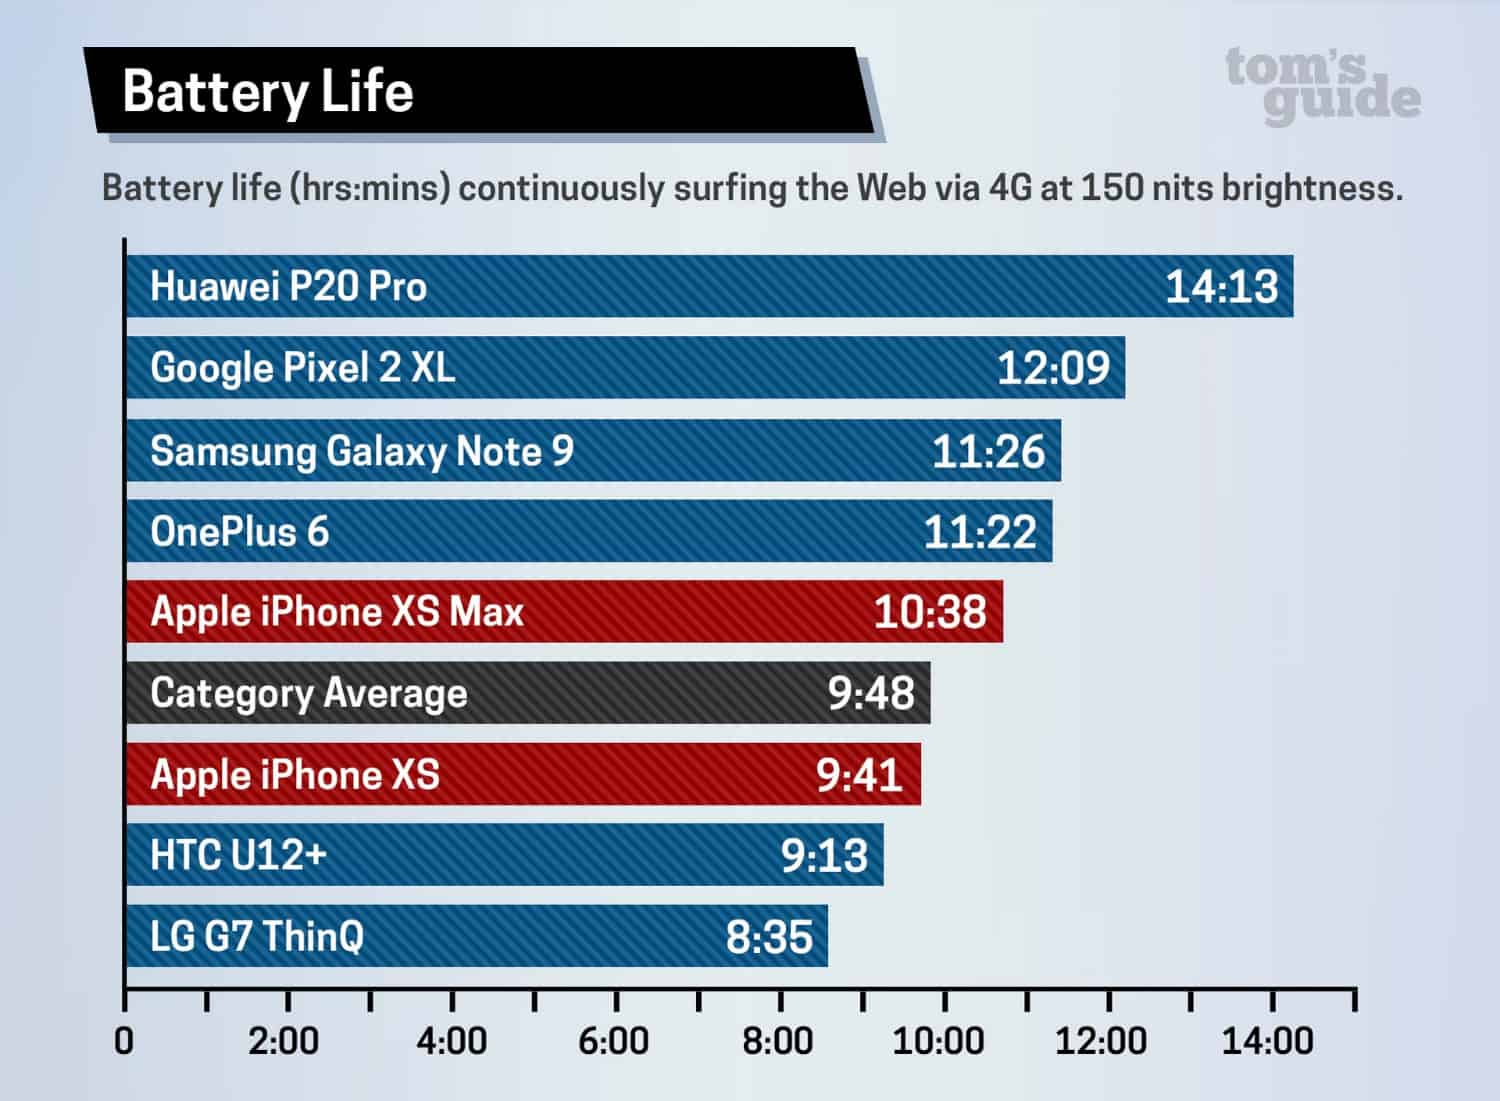 iphone xr battery life vs 6s plus